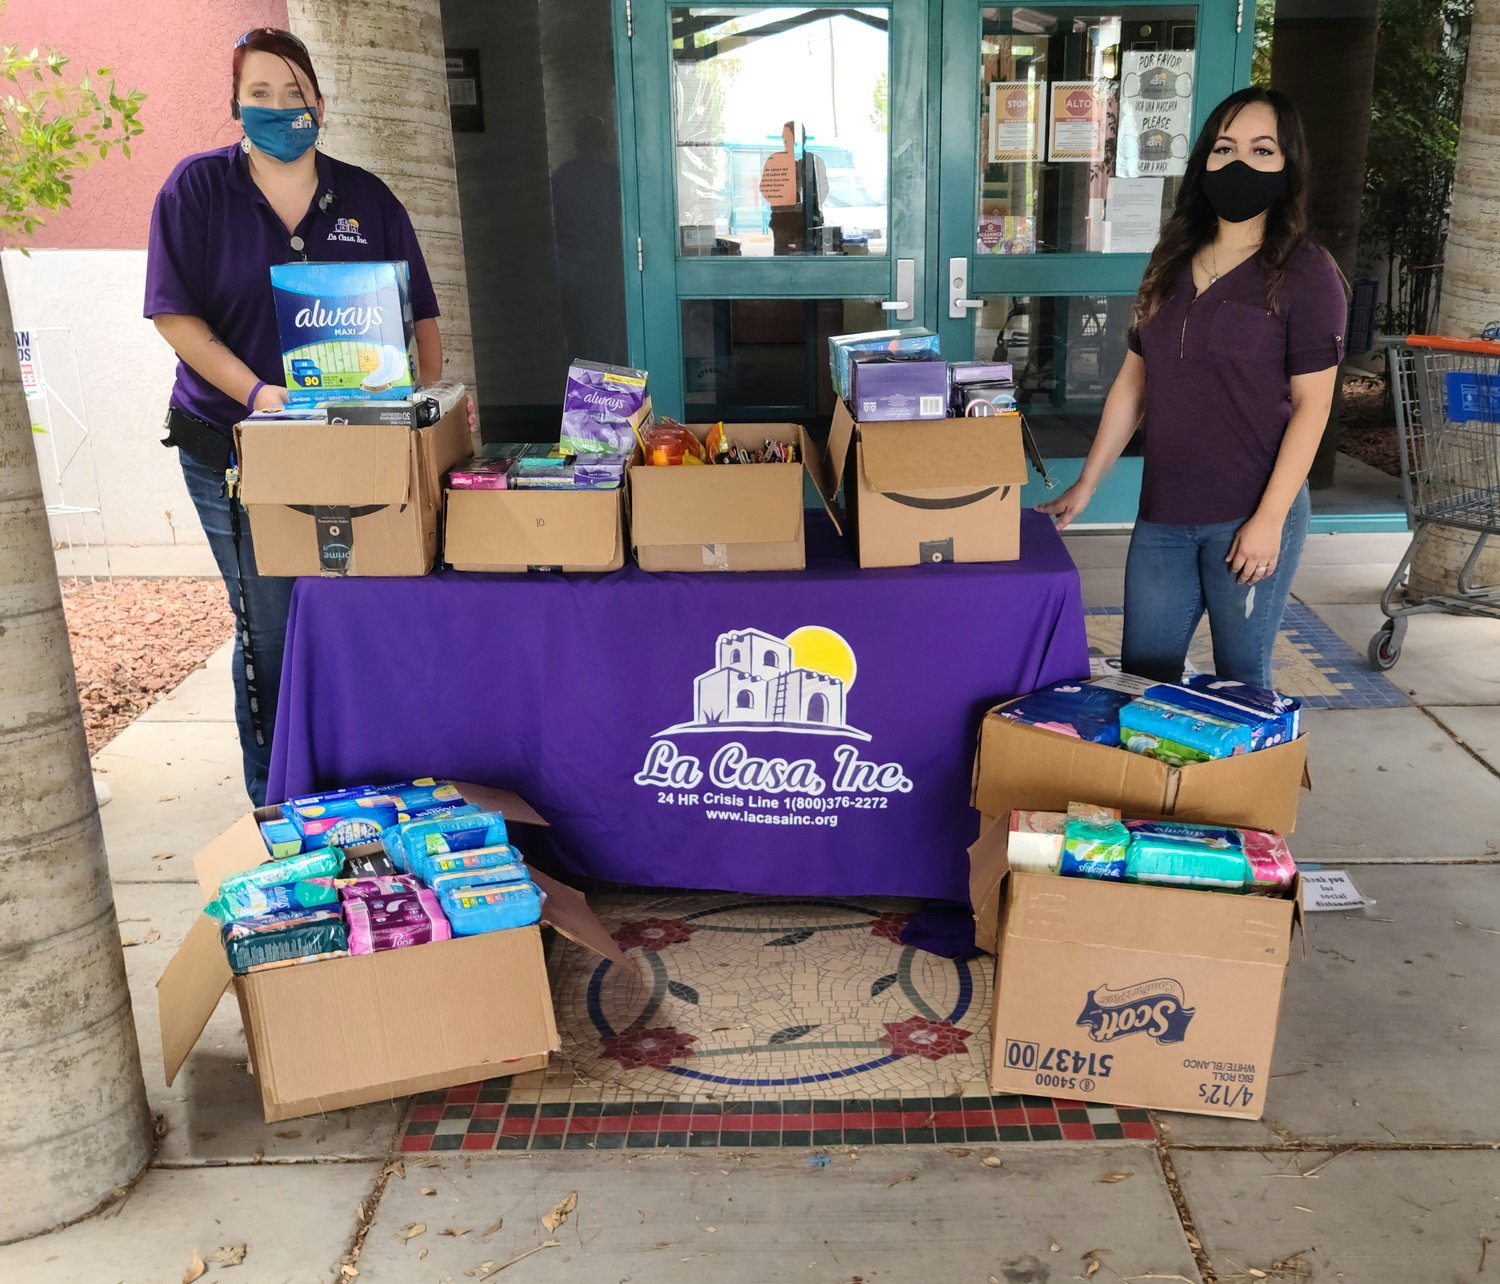 La Casa, Inc. Event and Volunteer Manager Pamela Cisneros and South Valley (Anthony, New Mexico) Advocate Jessica Solis staging a donation event related to COVID.